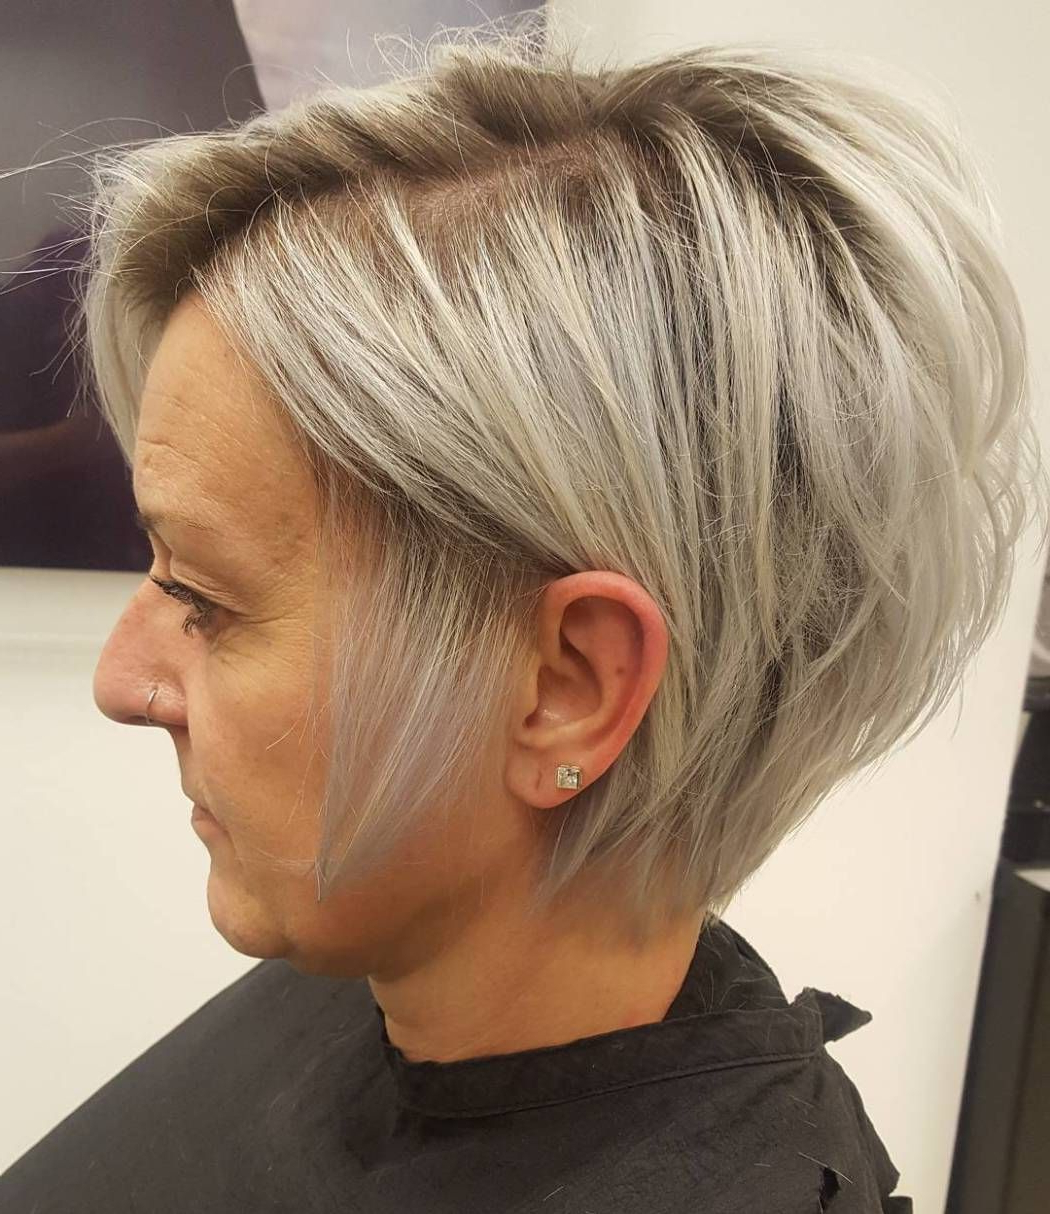 90 Classy And Simple Short Hairstyles For Women Over 50 In 2018 Within Blonde Pixie Haircuts For Women 50+ (Gallery 3 of 20)